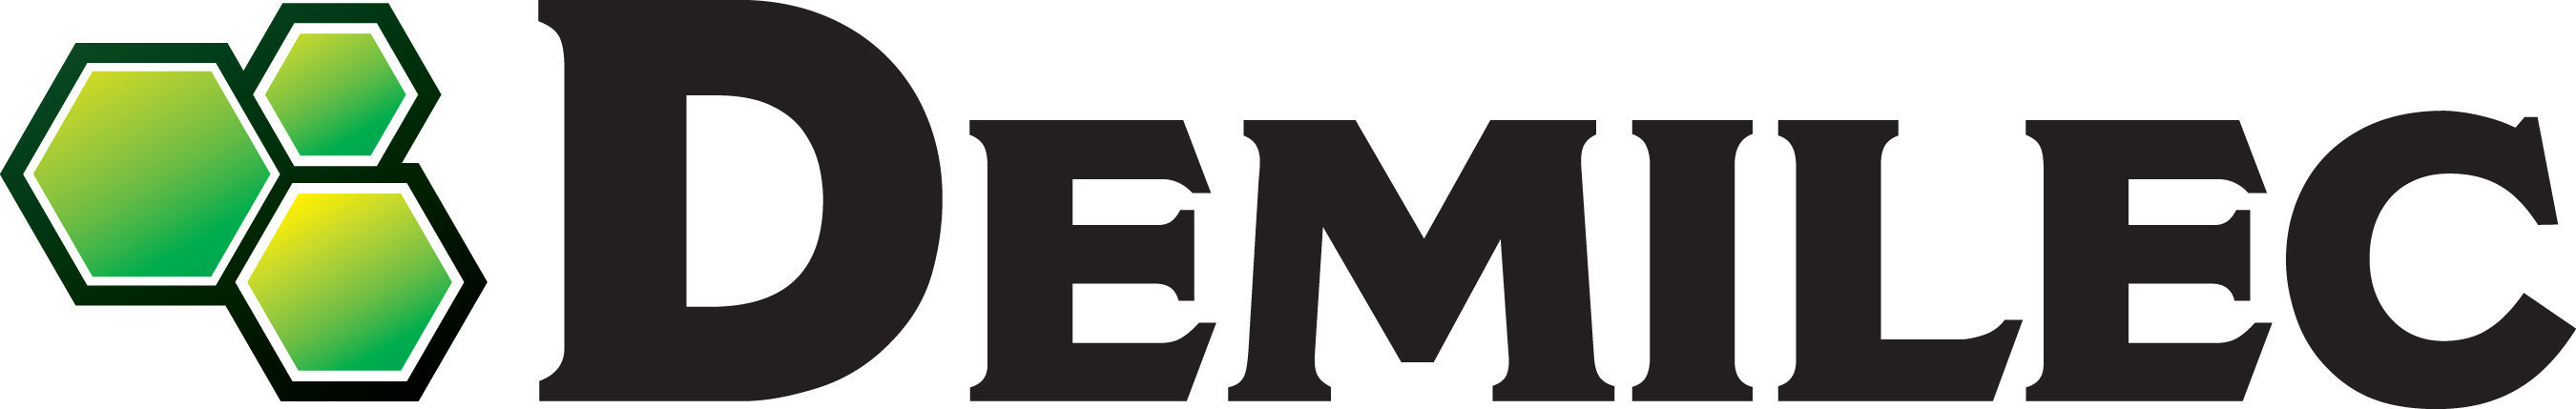 Demilec is one of North America's largest manufacturers of spray foam insulation and polyurea products.